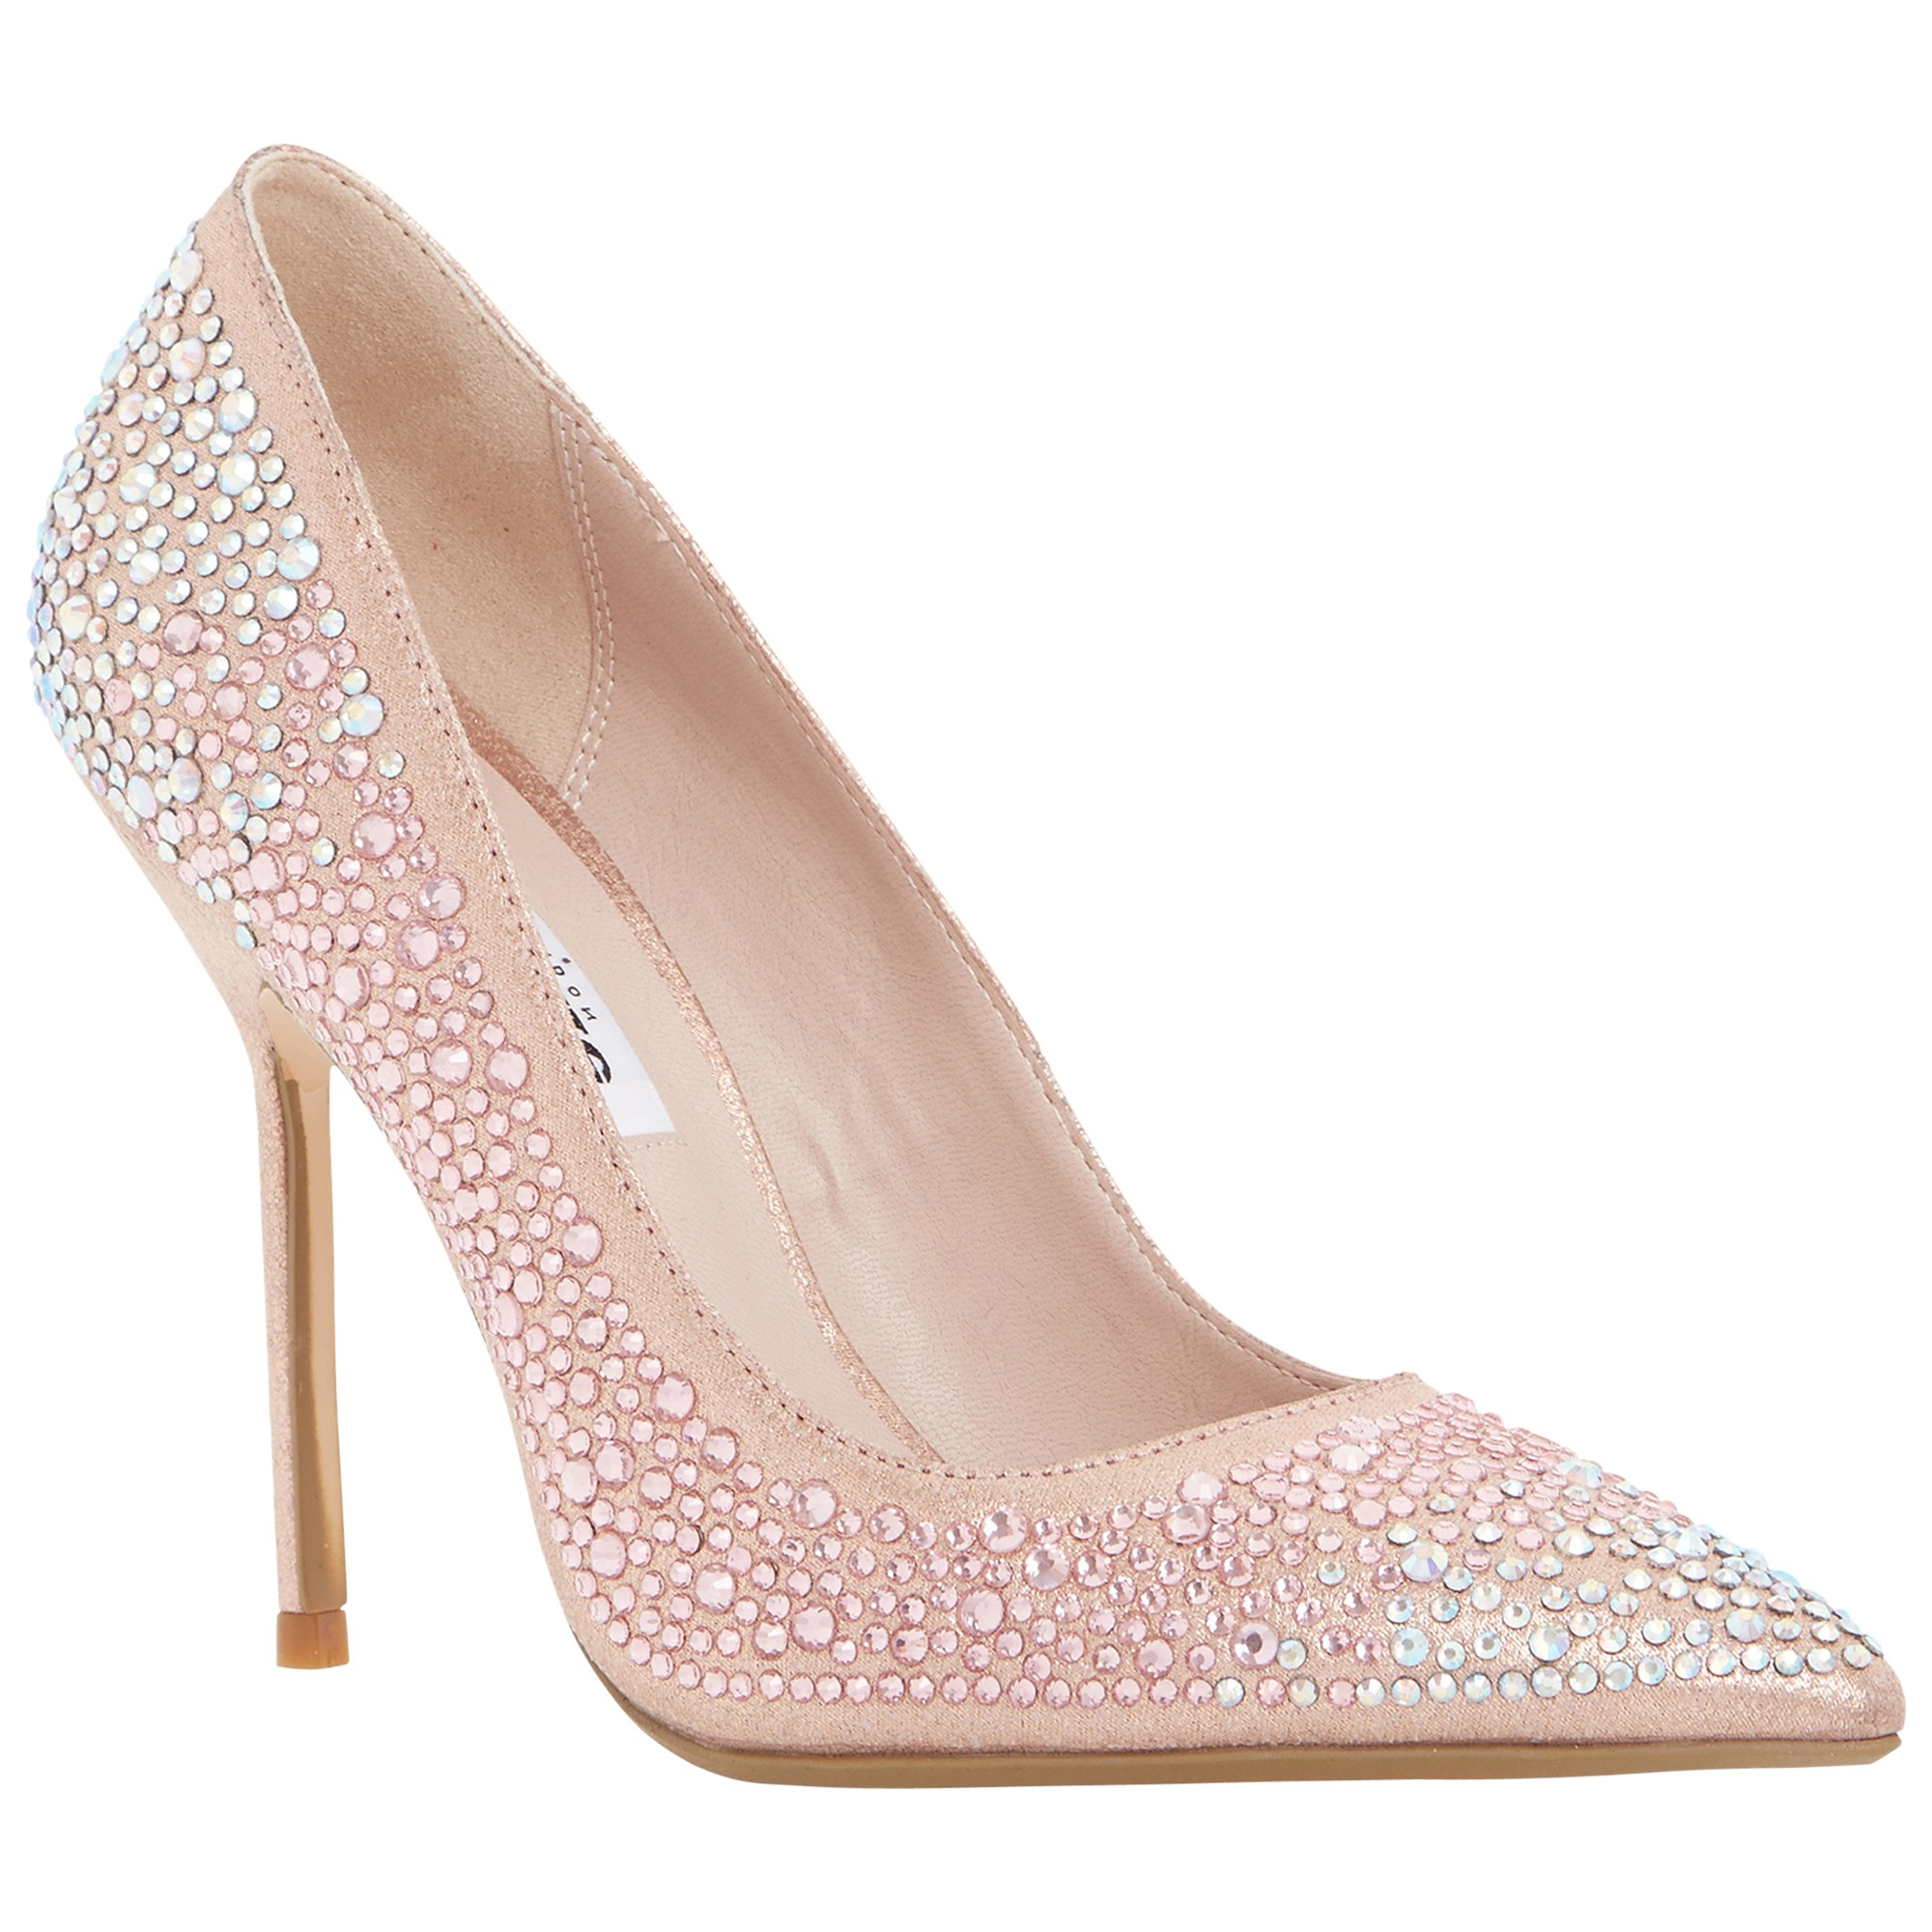 42f937e4fb Dune Beautie Embellished Stiletto Court Heels in Pink - Lyst